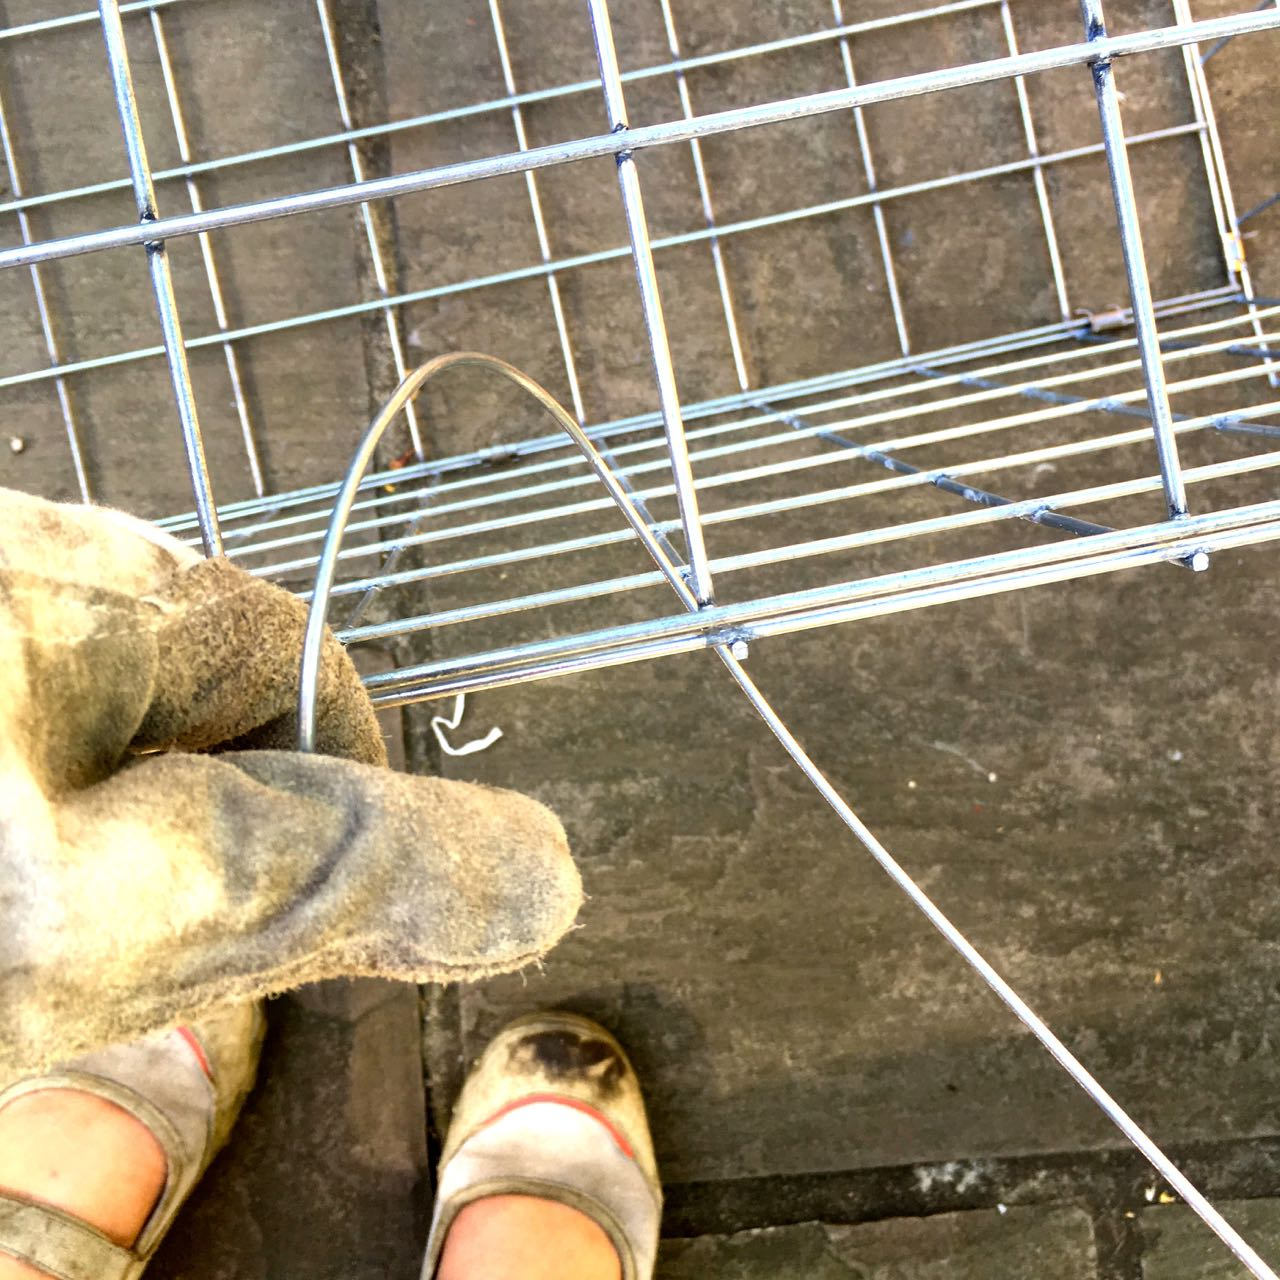 Assembling the gabion baskets was akin to sewing with wire - and with gloves on!